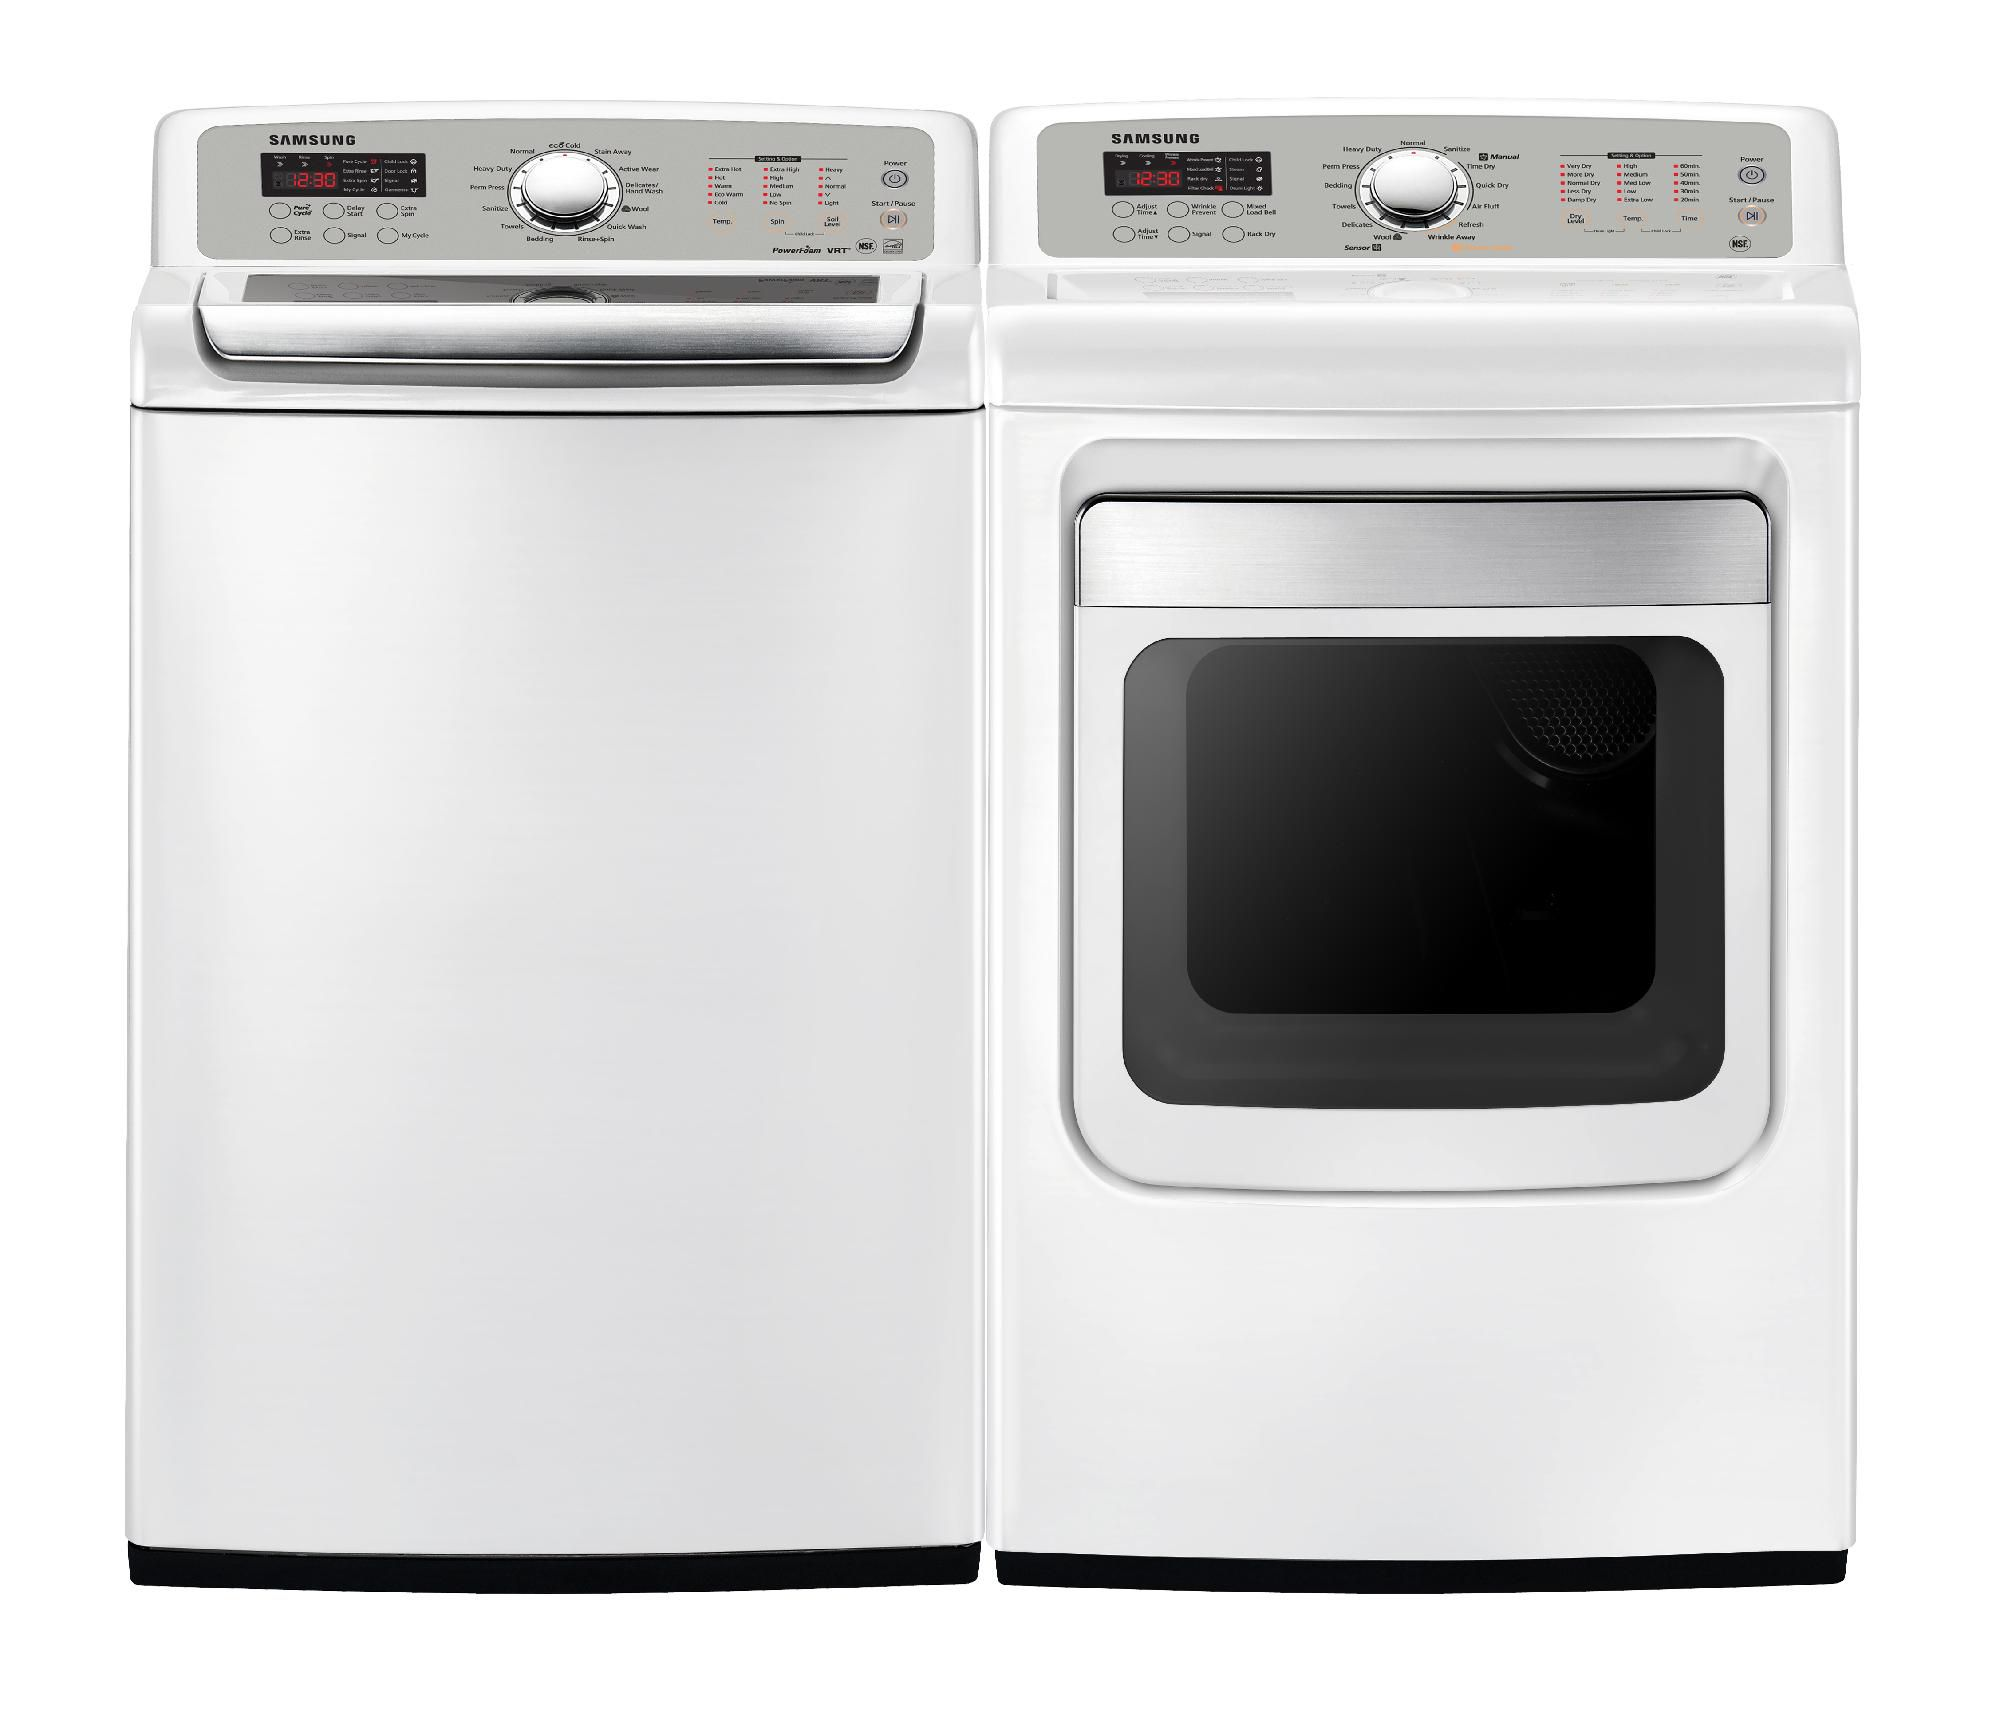 Samsung 7.4 cu. ft. Steam Gas Dryer, White